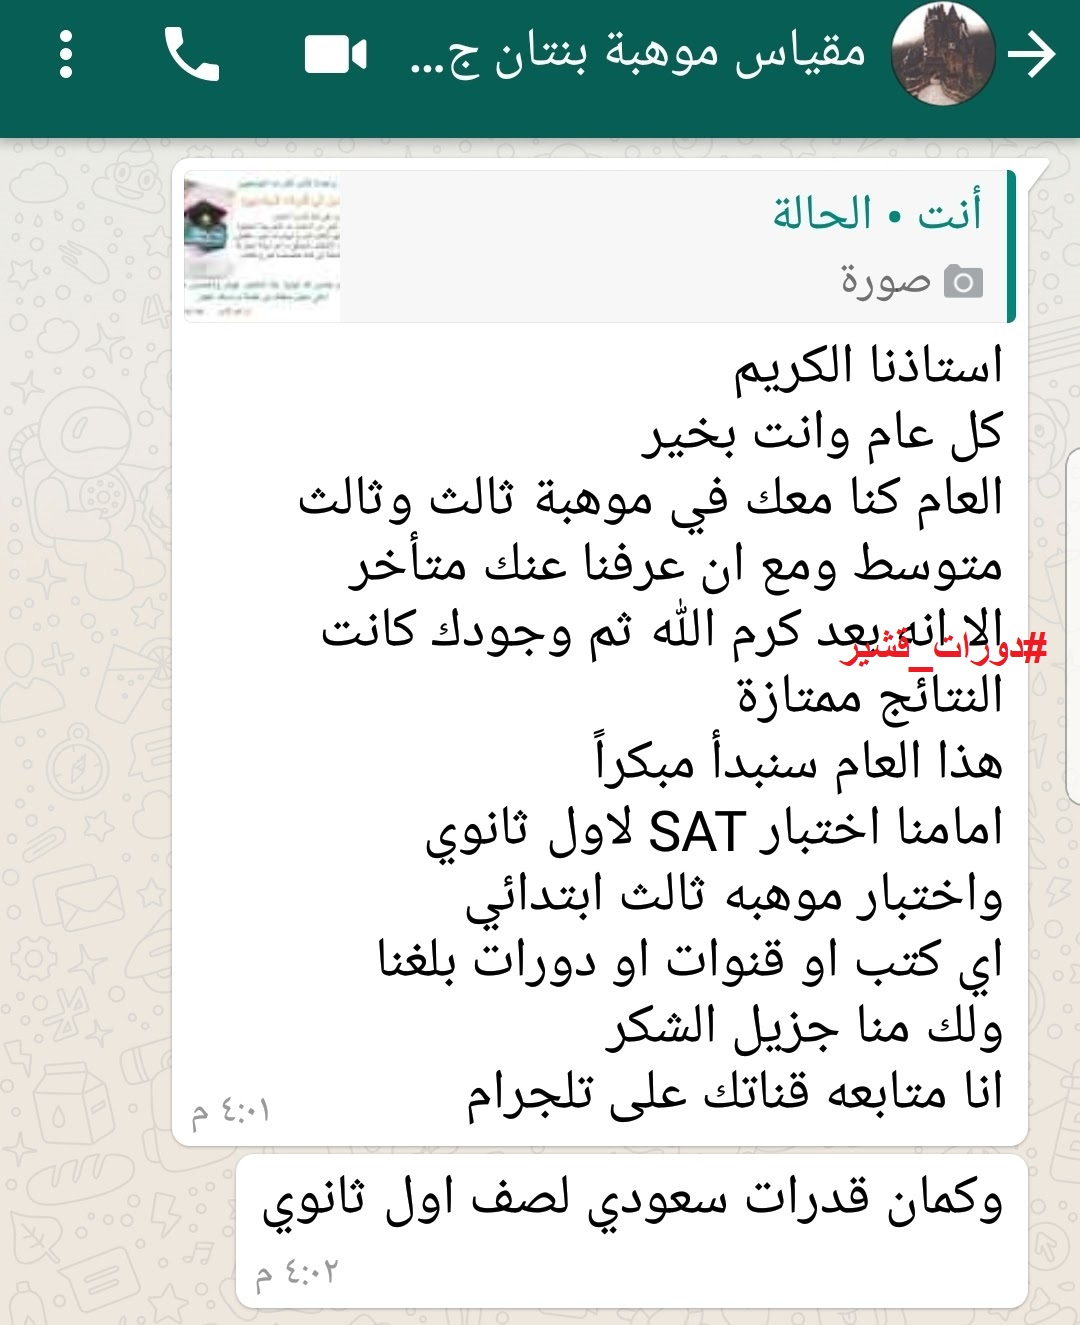 Screenshot_٢٠١٩٠٨٢١-١٦٠٤١٠_WhatsApp